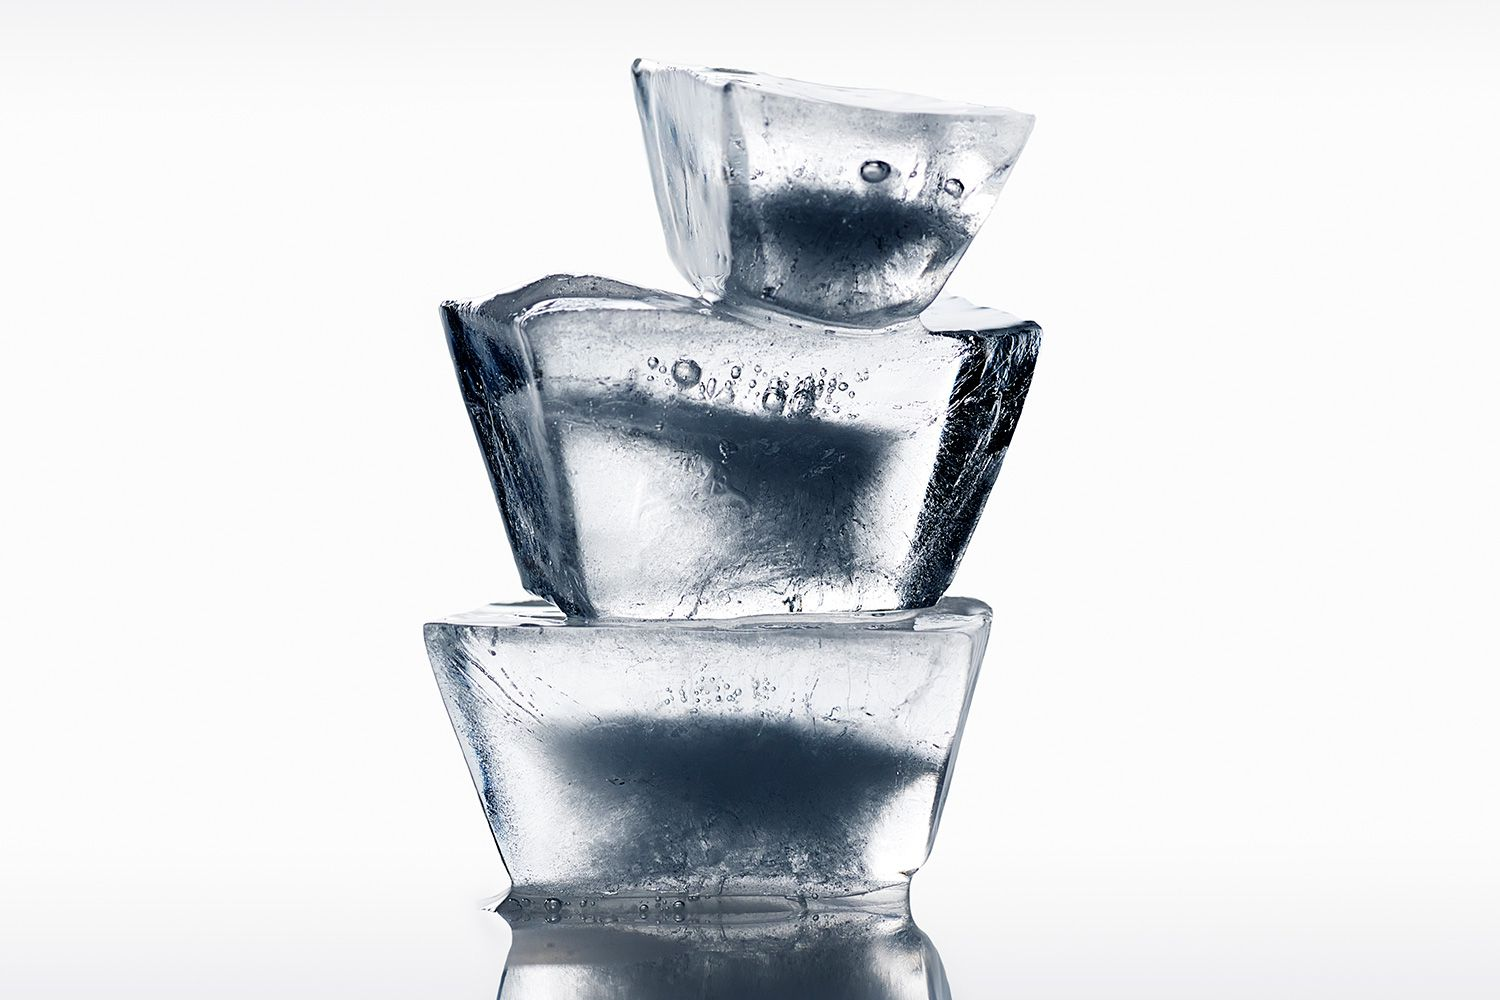 What Is The Freezing Point Of Water